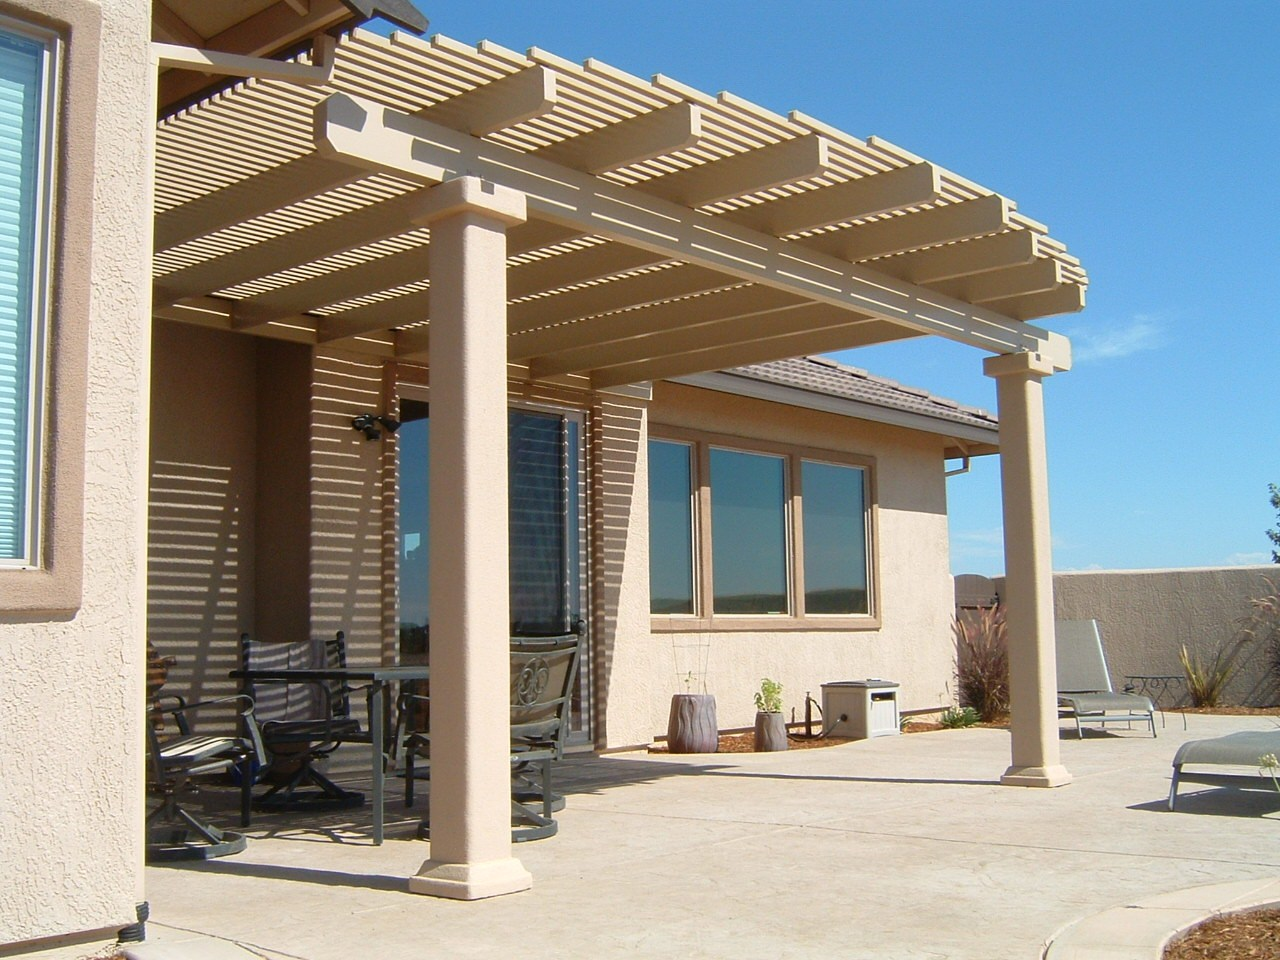 Patio designs stucco patio cover designs for Stucco columns